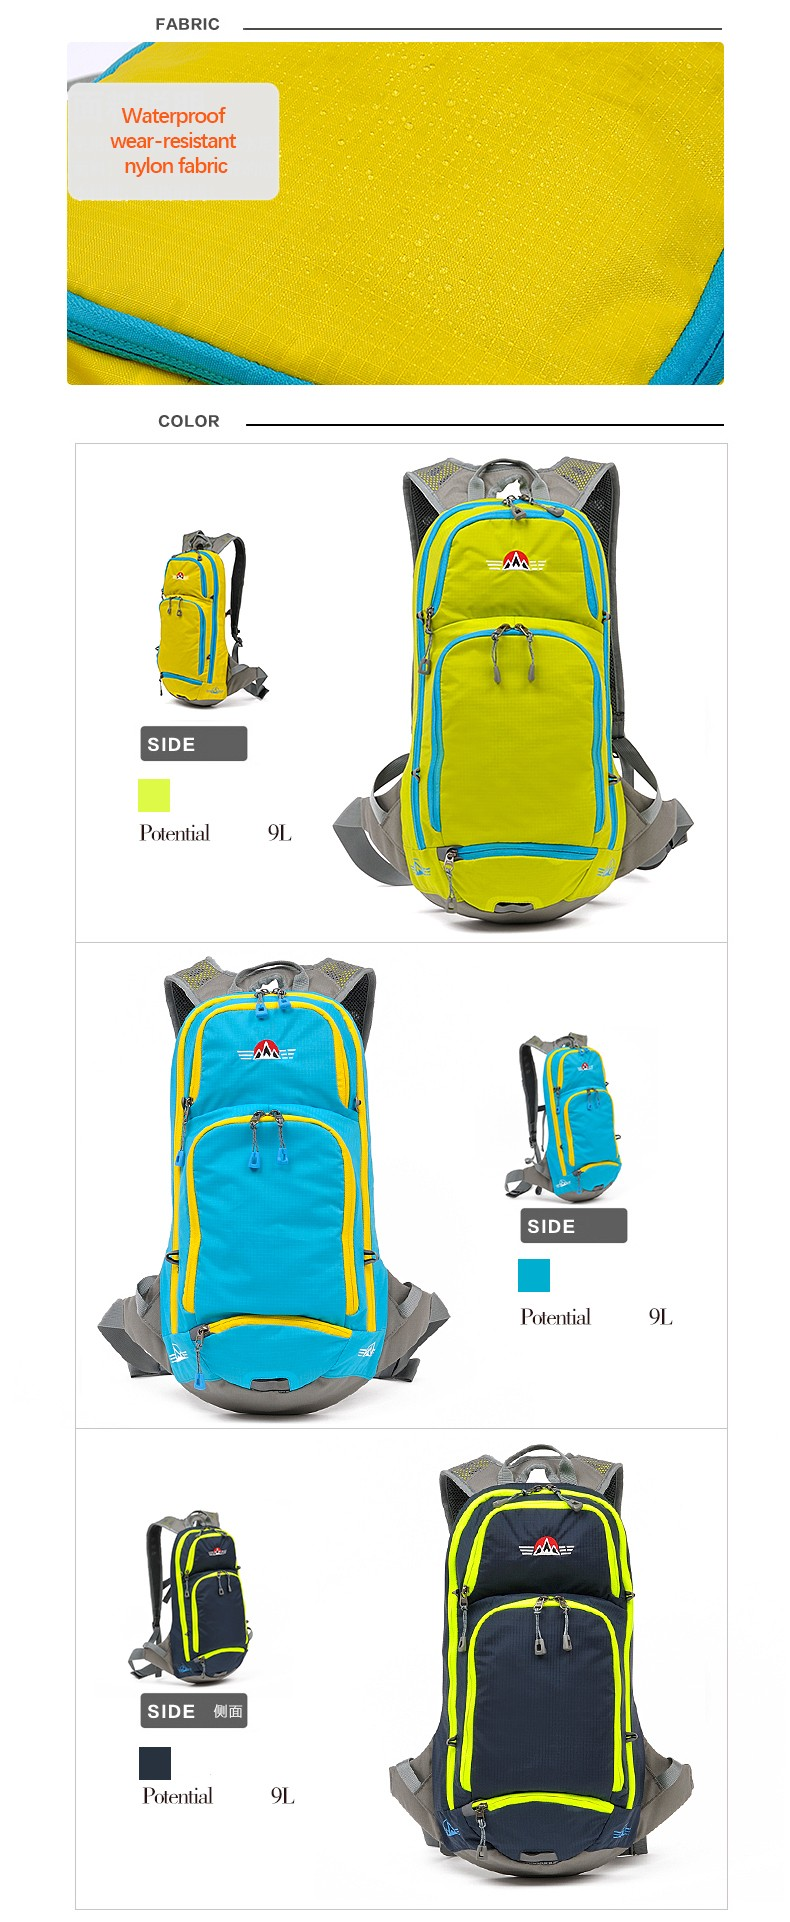 waterproof bicycle bags, riding backpack, traveling bags for cycling